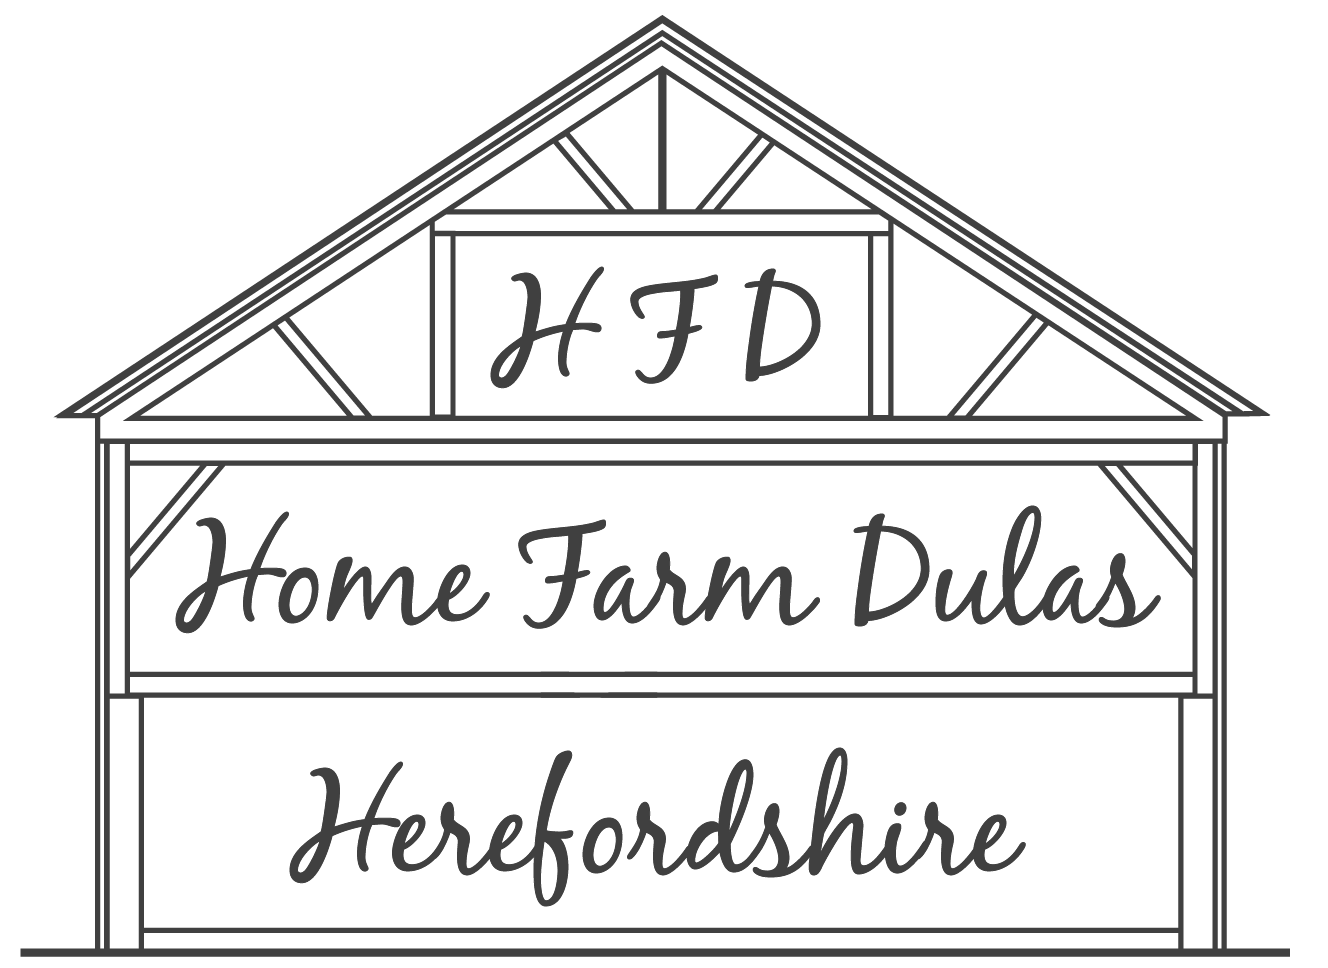 Home Farm Dulas